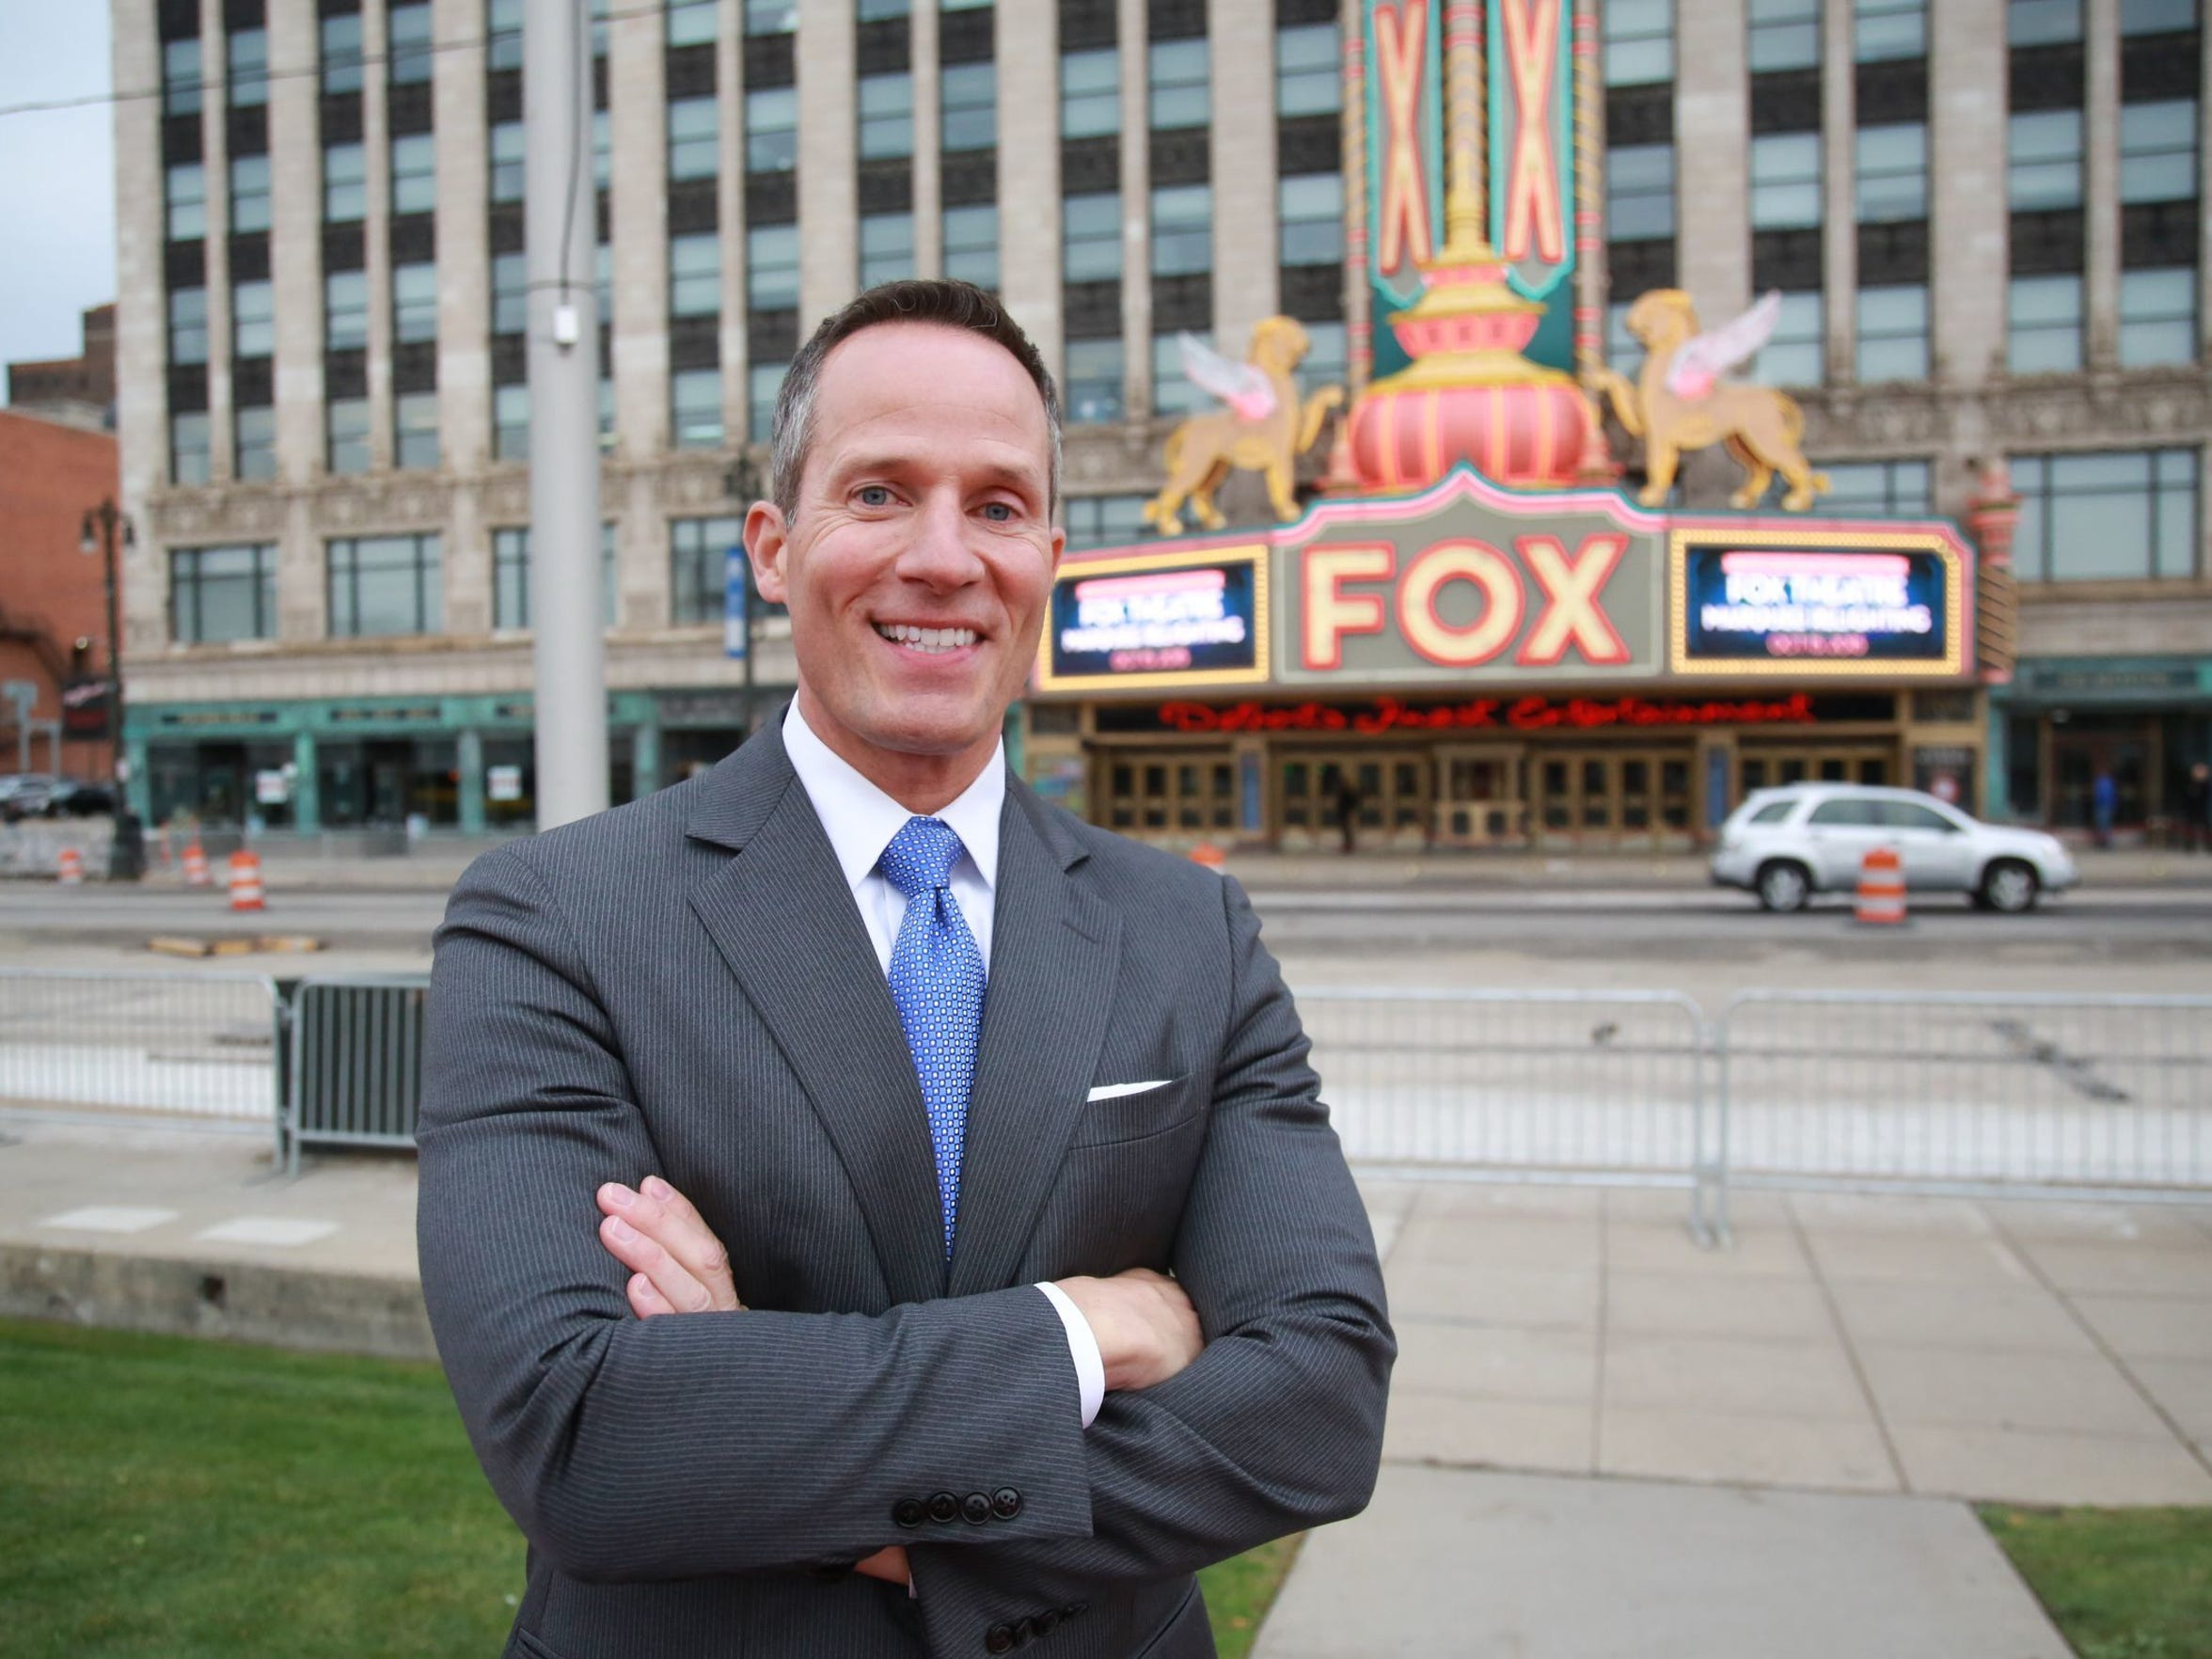 Chris Ilitch stands in front of the Fox Theatre marquee during the relighting event in Detroit on Oct. 15, 2015.